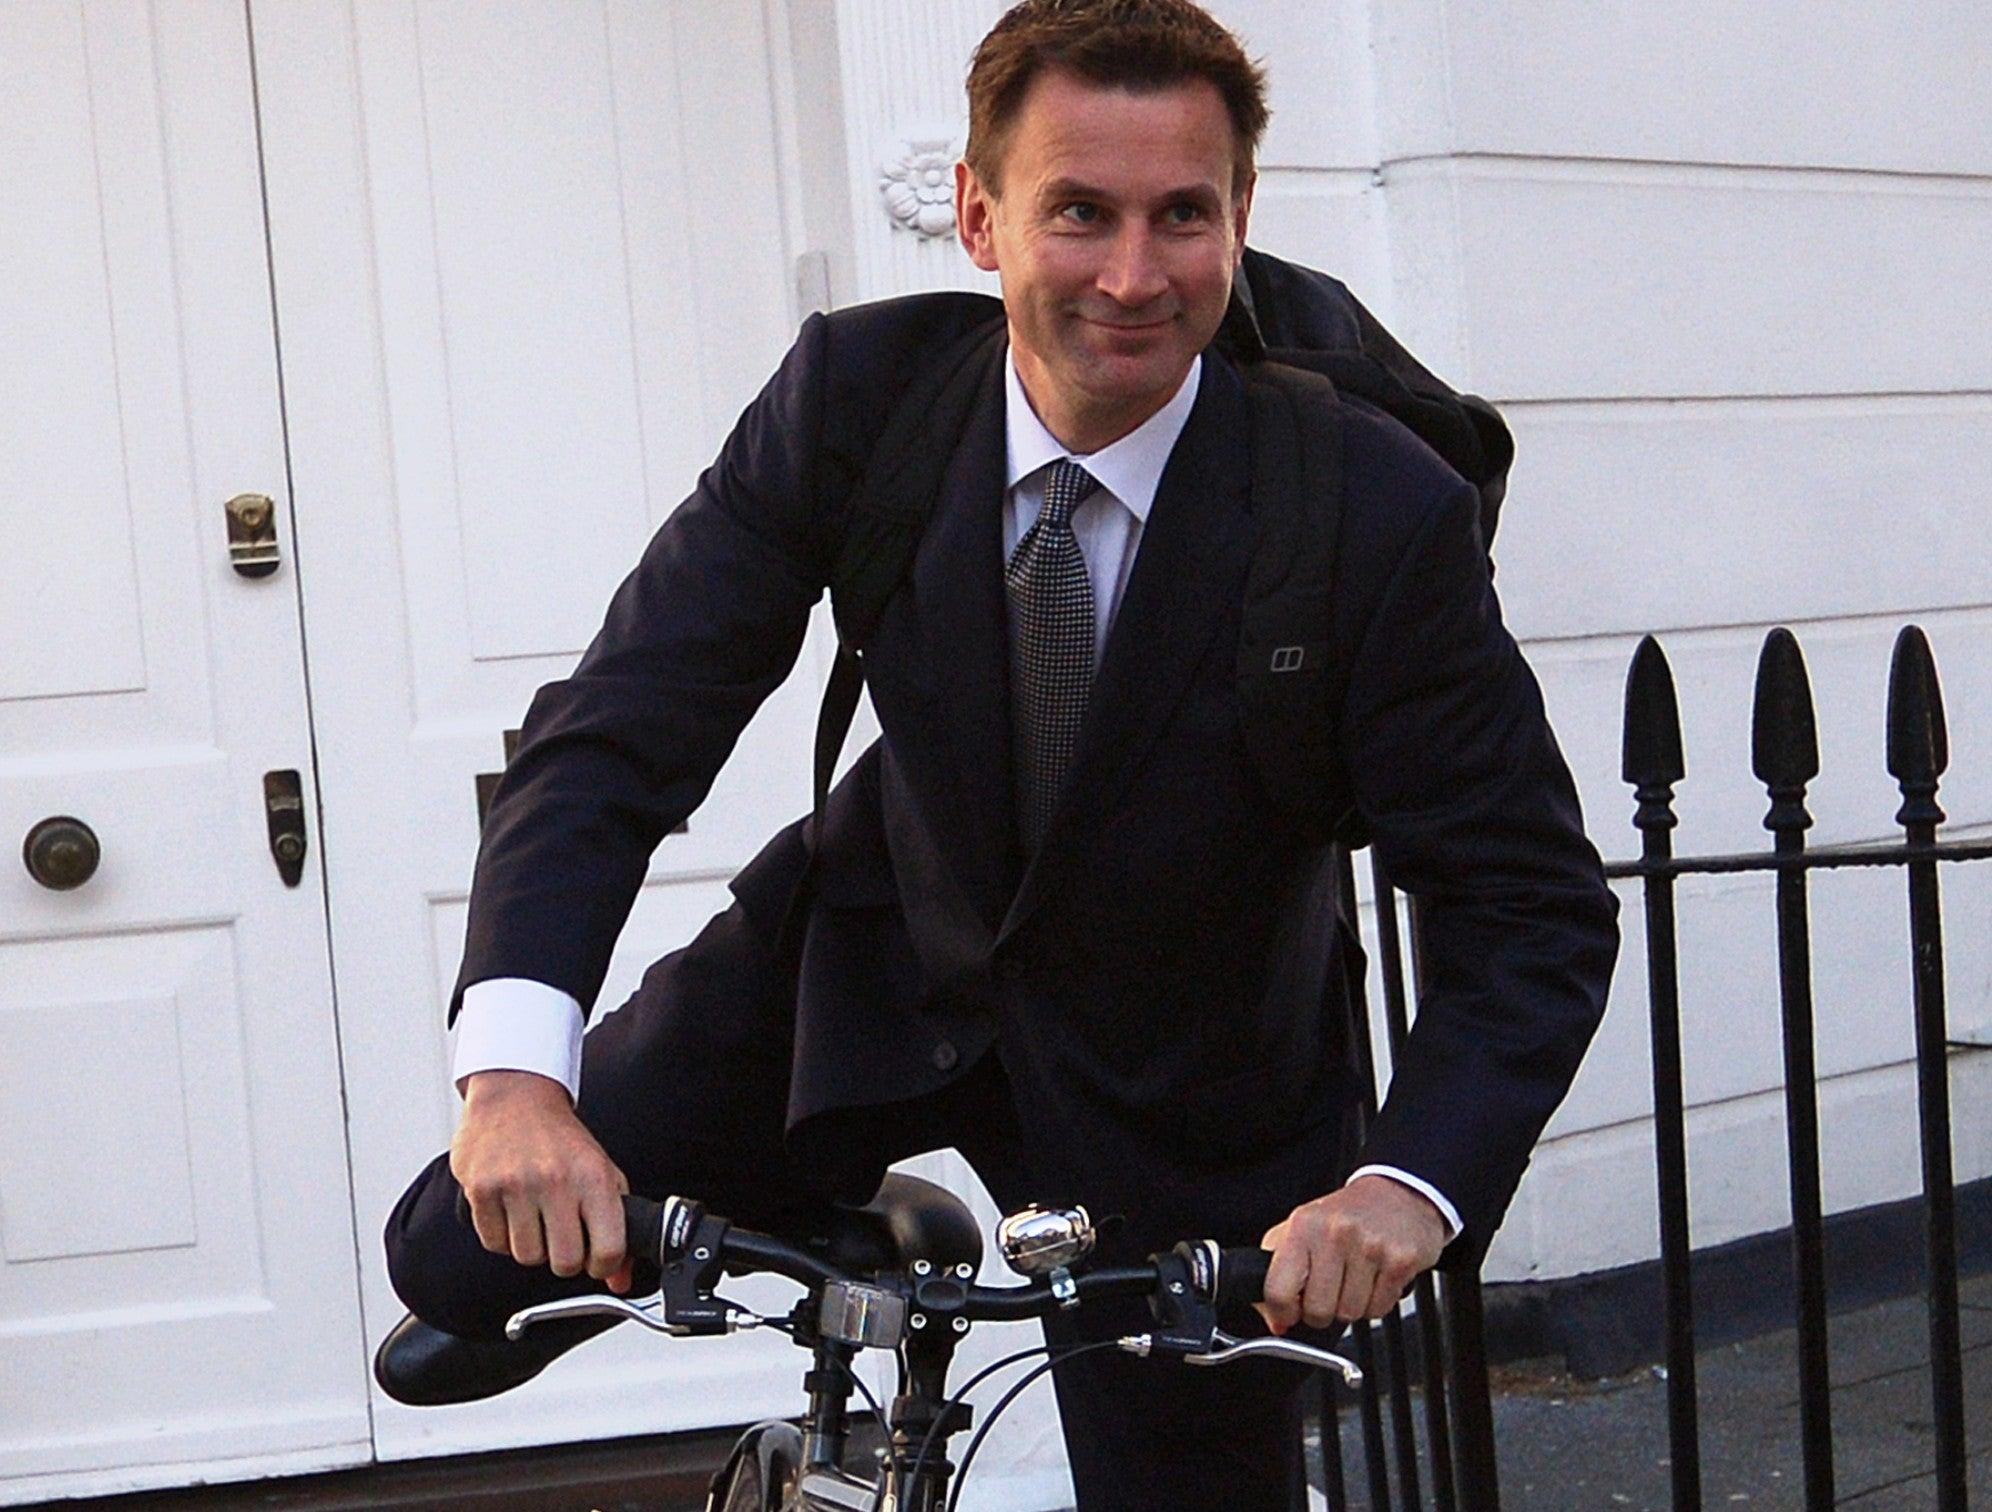 where on earth has jeremy hunt gone at a critical moment